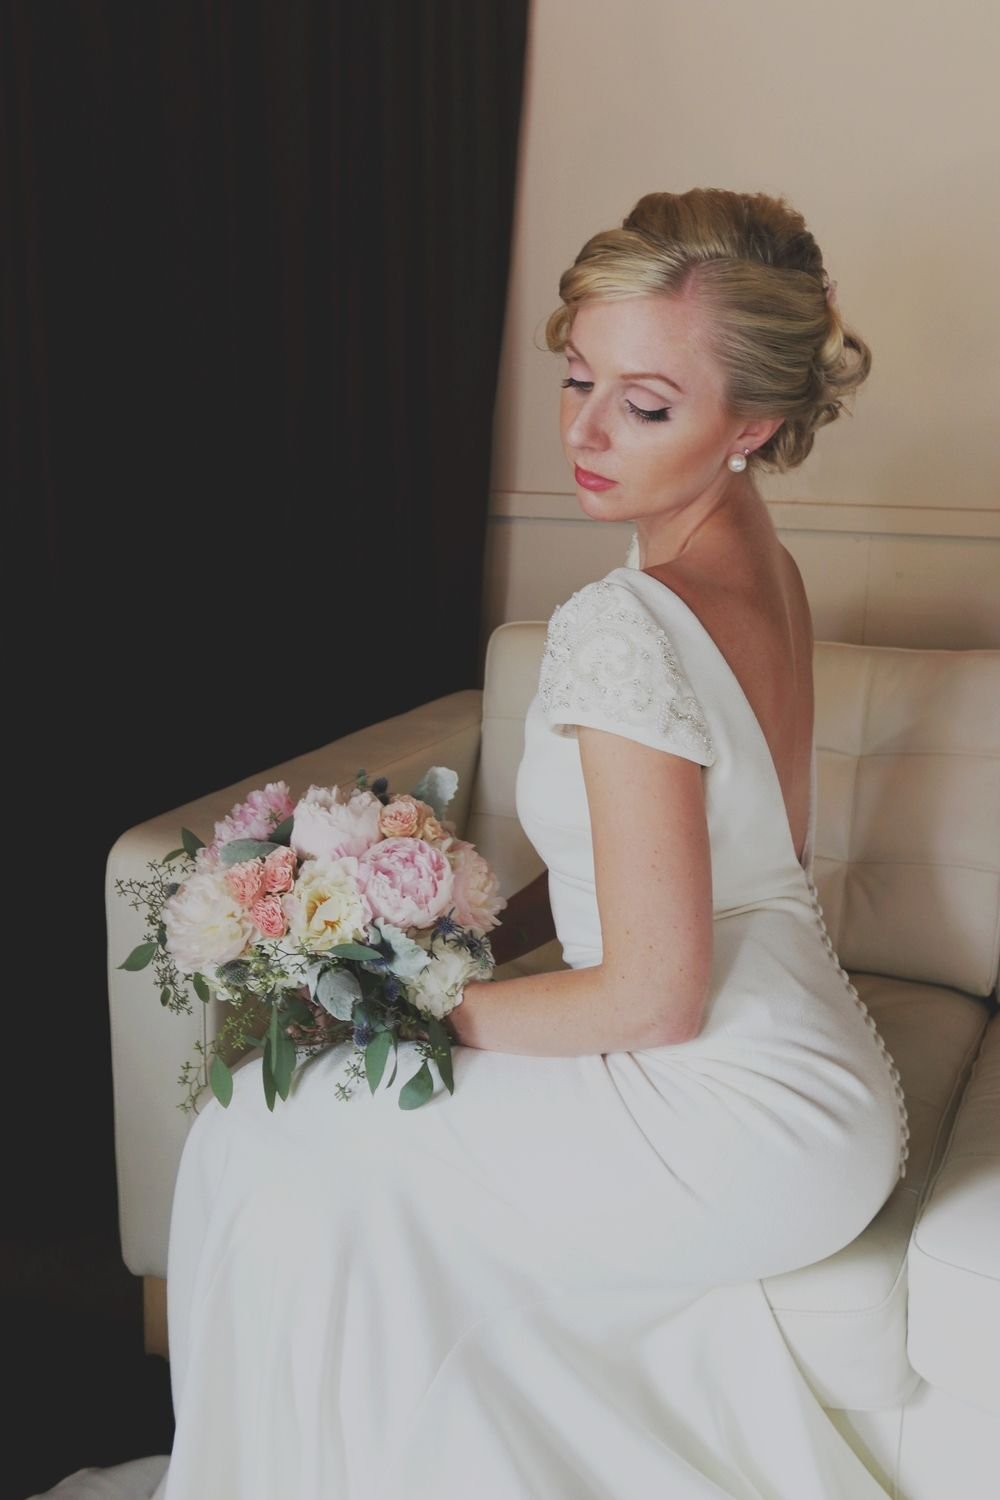 dress - Monroe Marilyn style wedding dress pictures video